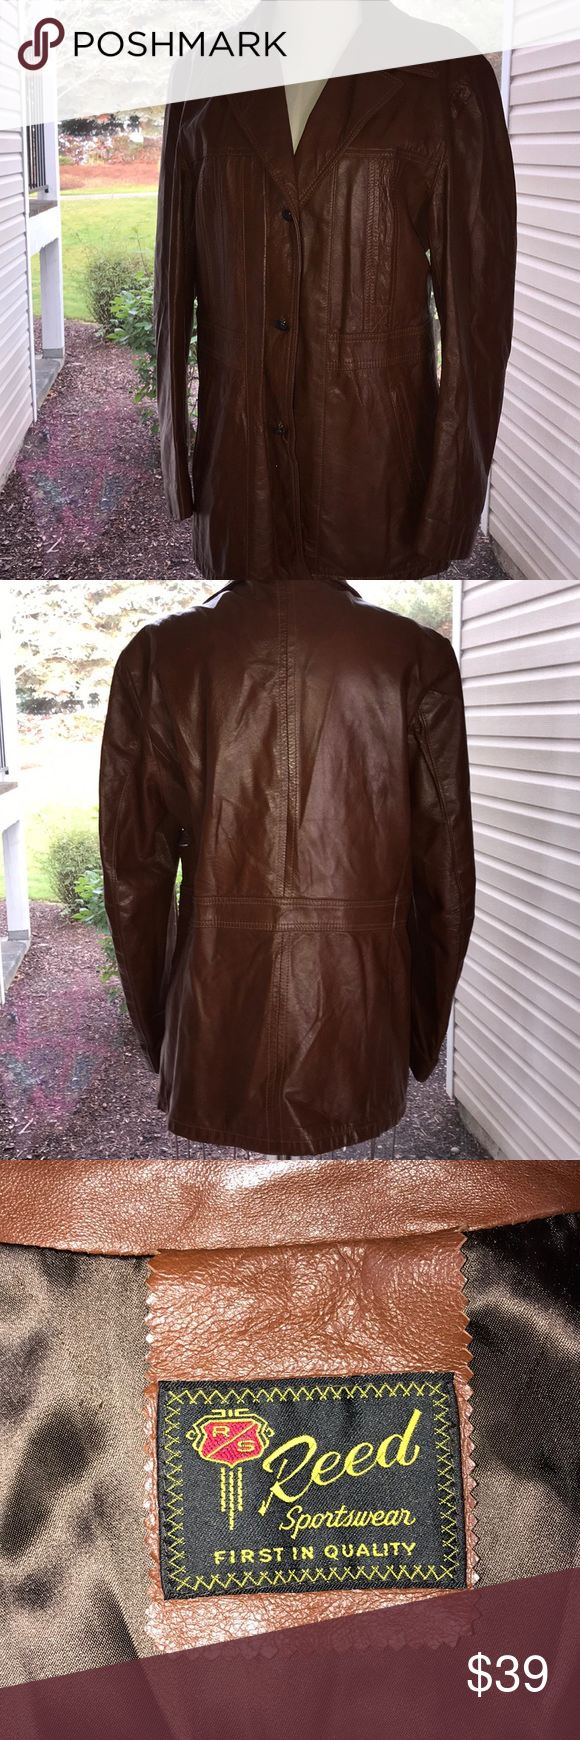 Vintage Reed Soft Leather Lined Jacket Sz M L Vintage Reed Soft Leather Button Up Lined Jacket Sz M L It Is Not To See The Line Jackets Jackets Soft Leather [ 1740 x 580 Pixel ]